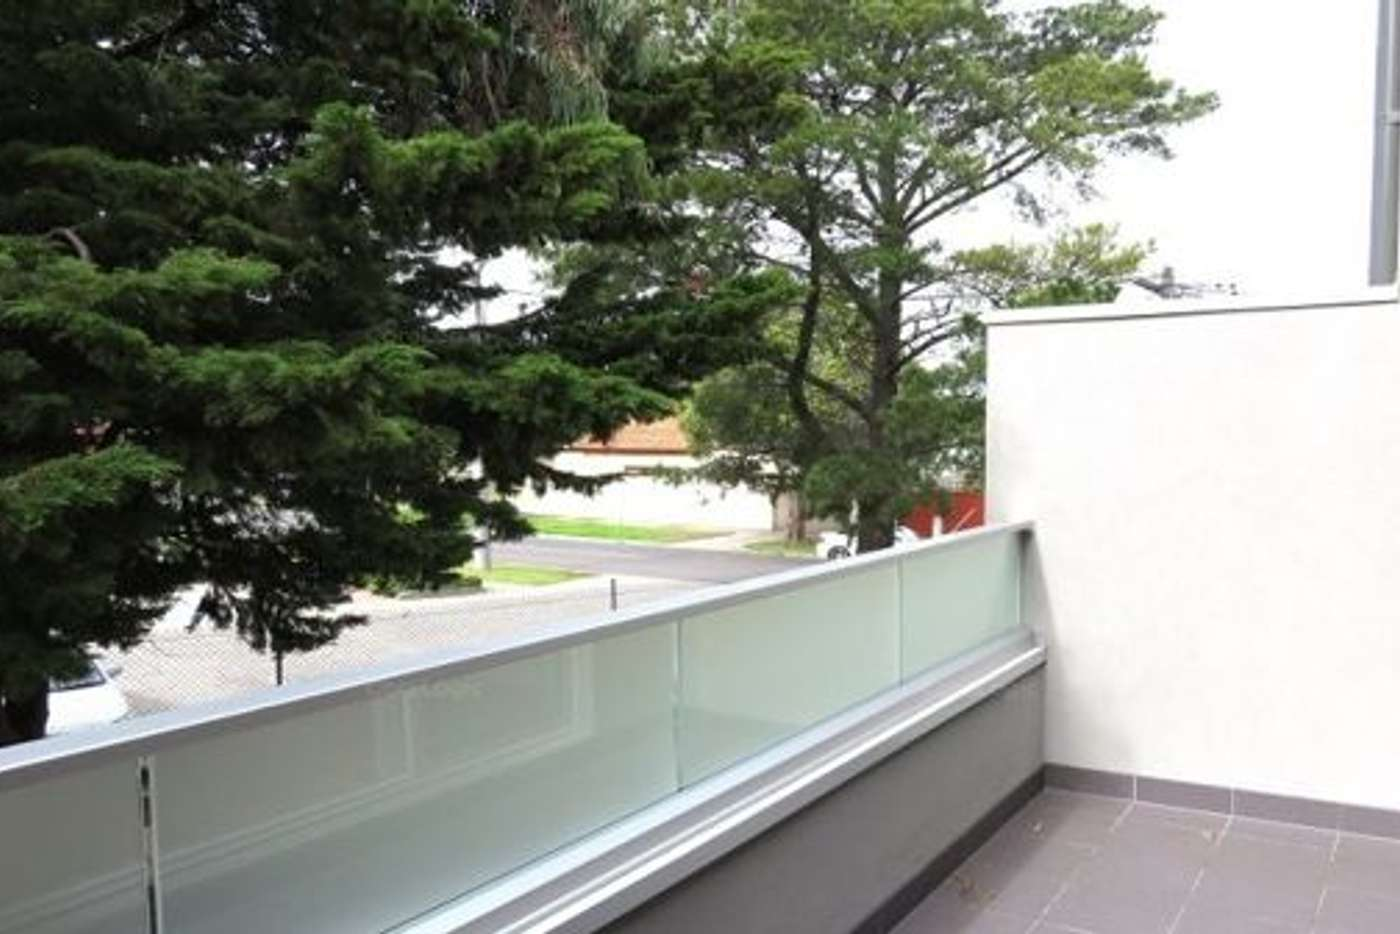 Sixth view of Homely townhouse listing, 2/2 Grandview Street, Glenroy VIC 3046